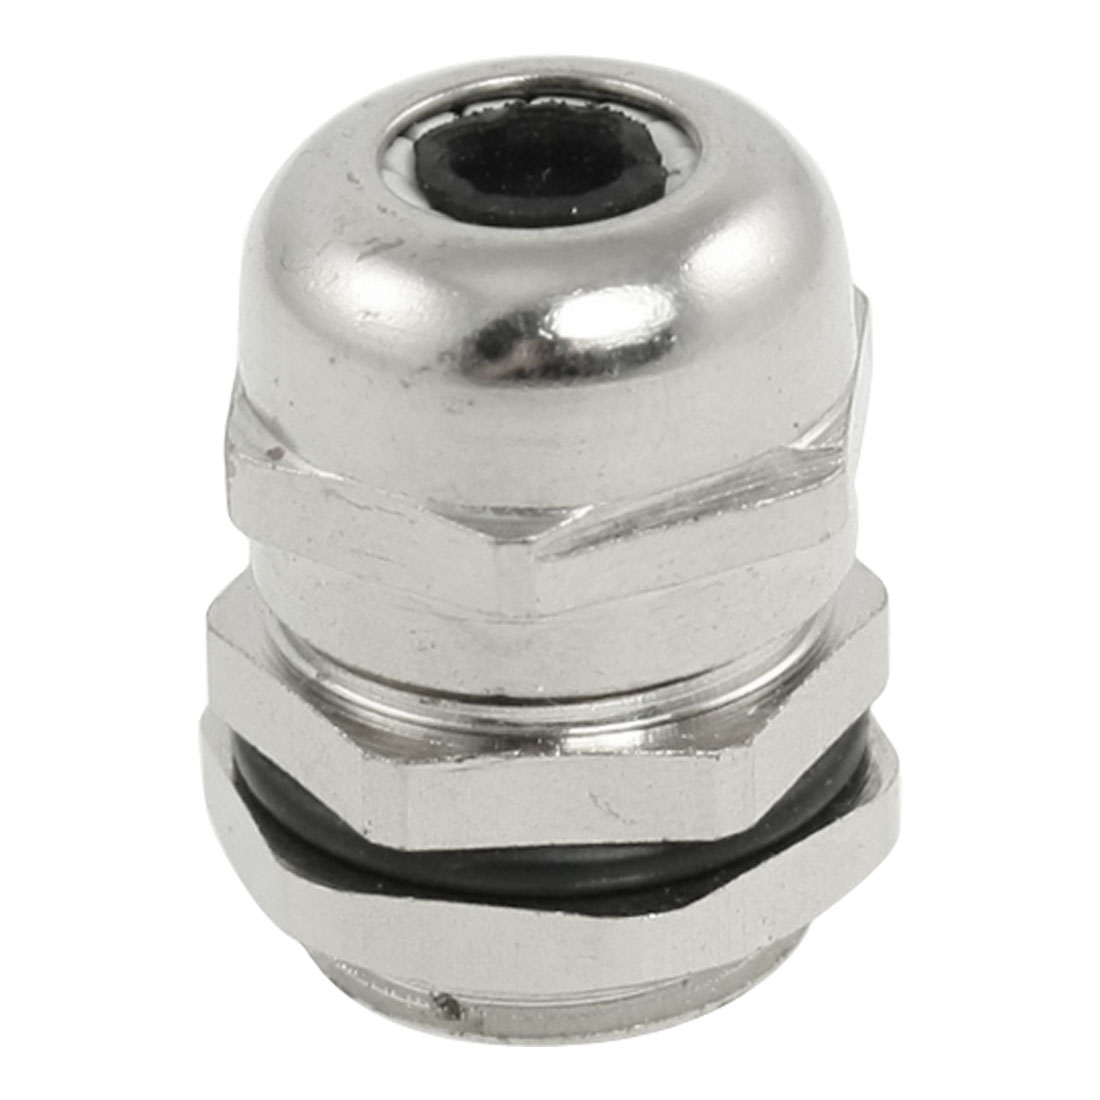 Silver Tone PG9 Waterproof 4-8mm Cable Gland Connector